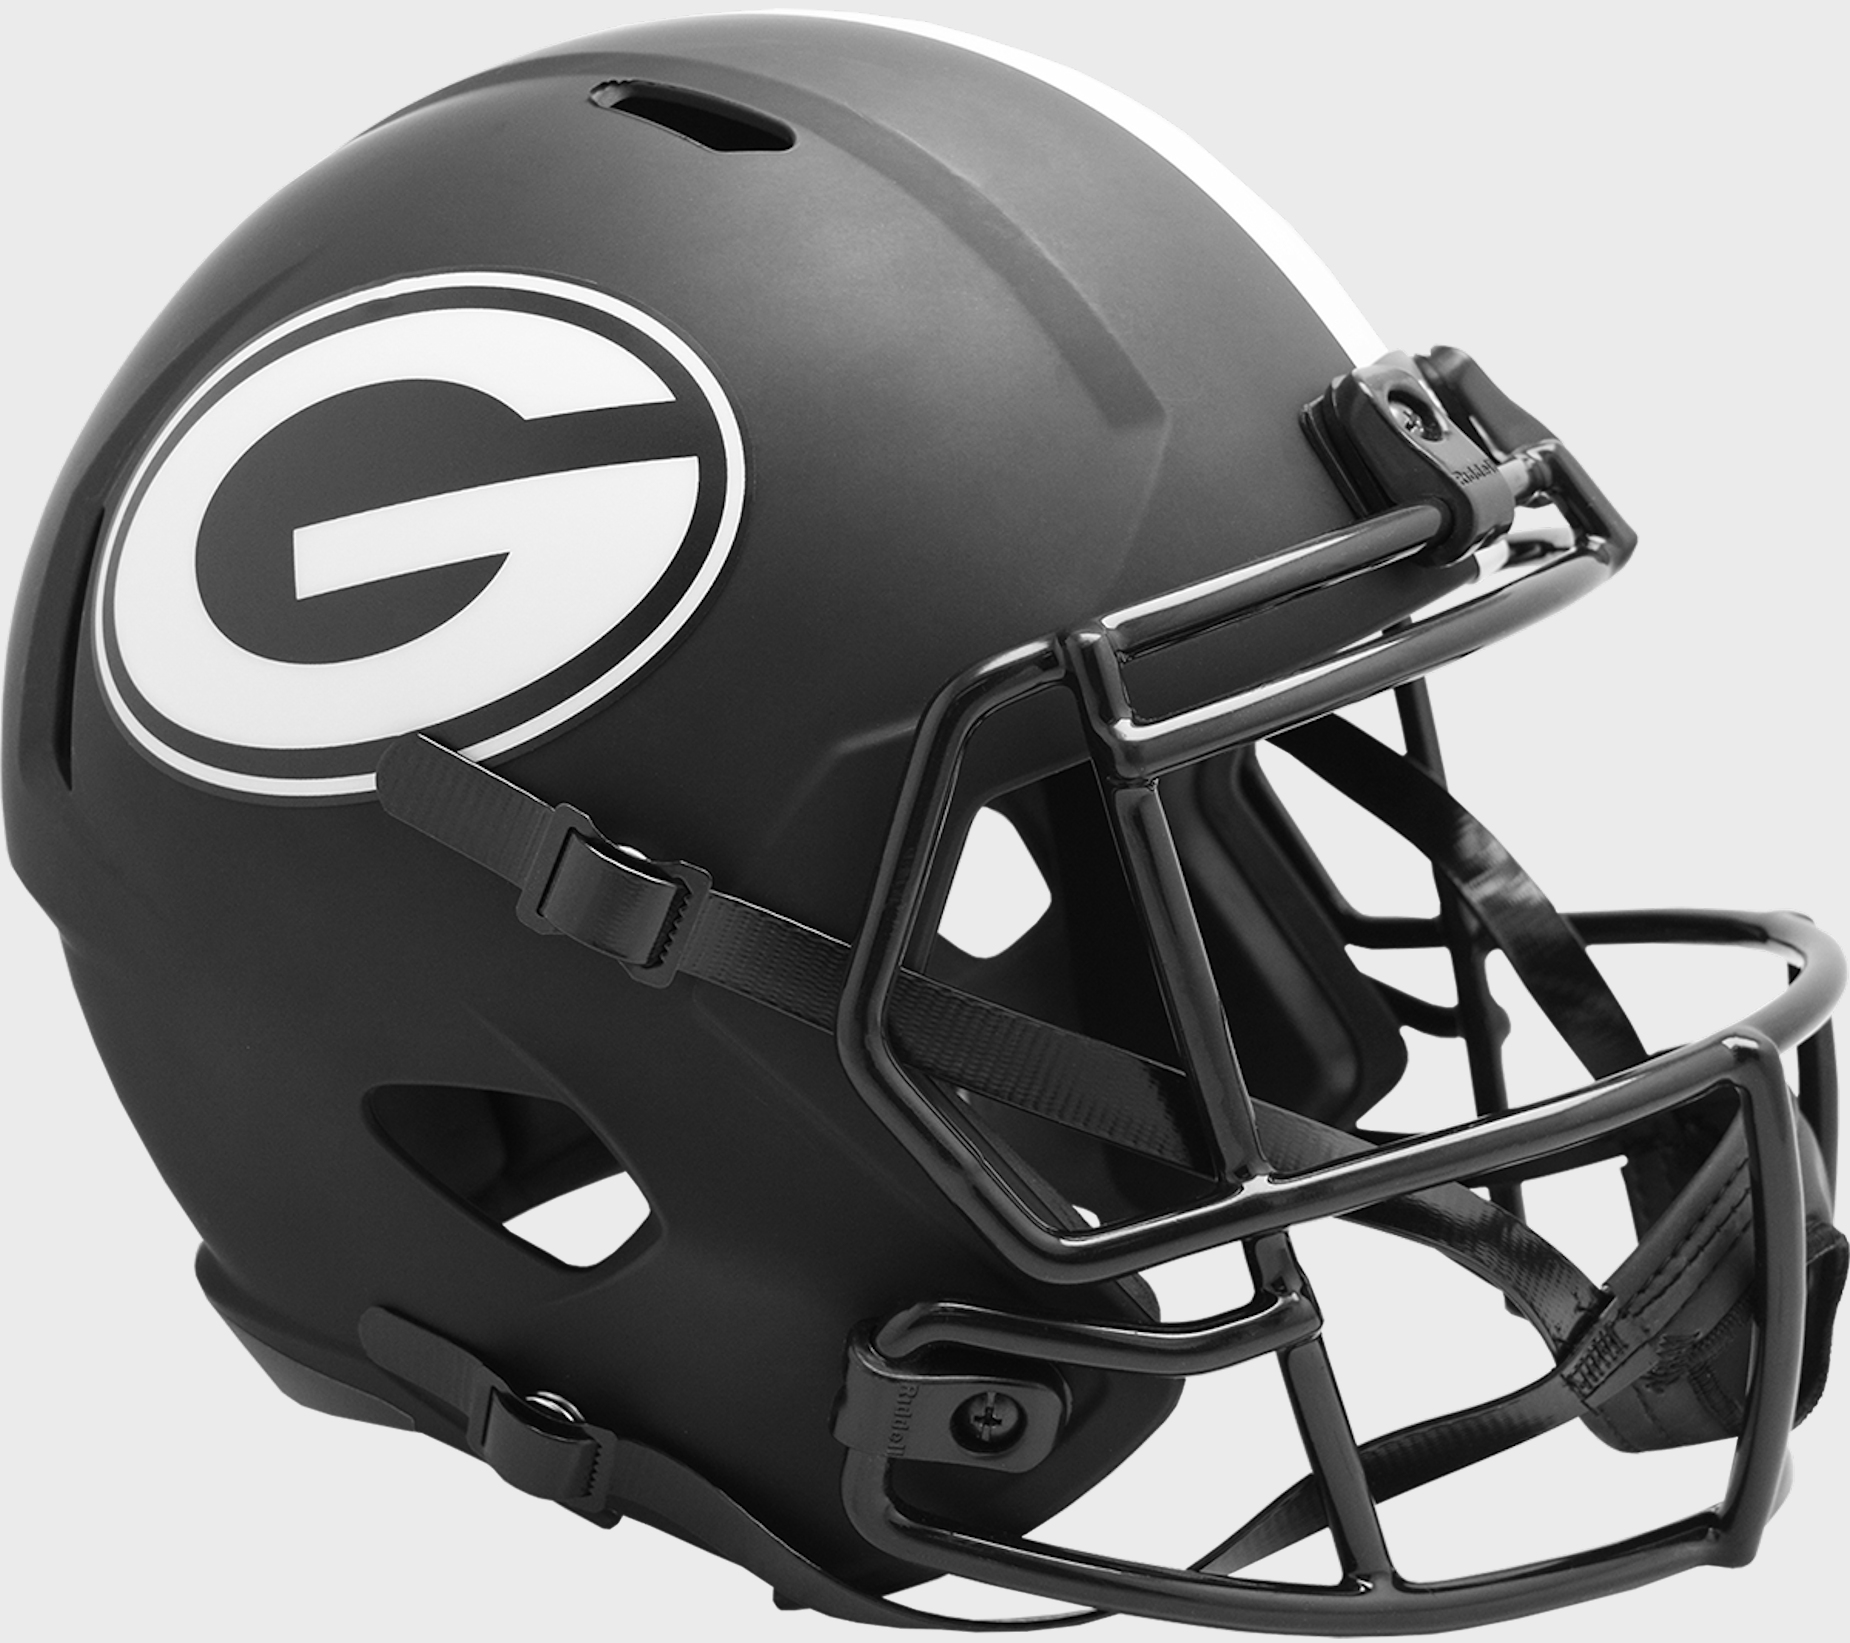 Georgia Bulldogs Speed Replica Football Helmet <B>ECLIPSE </B>